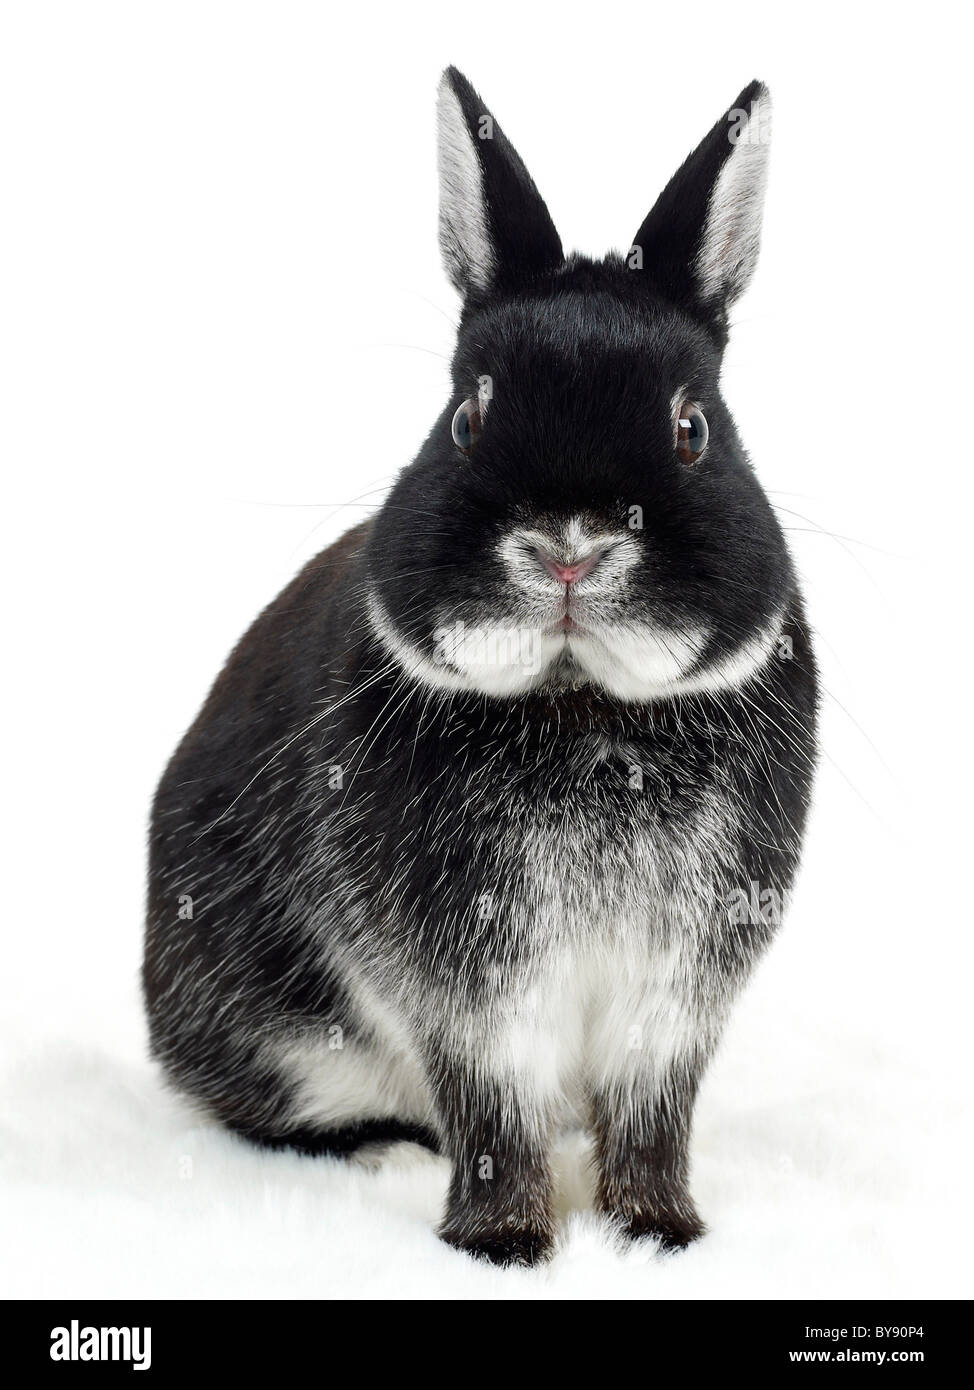 A black and white rabbit looking surprised. - Stock Image